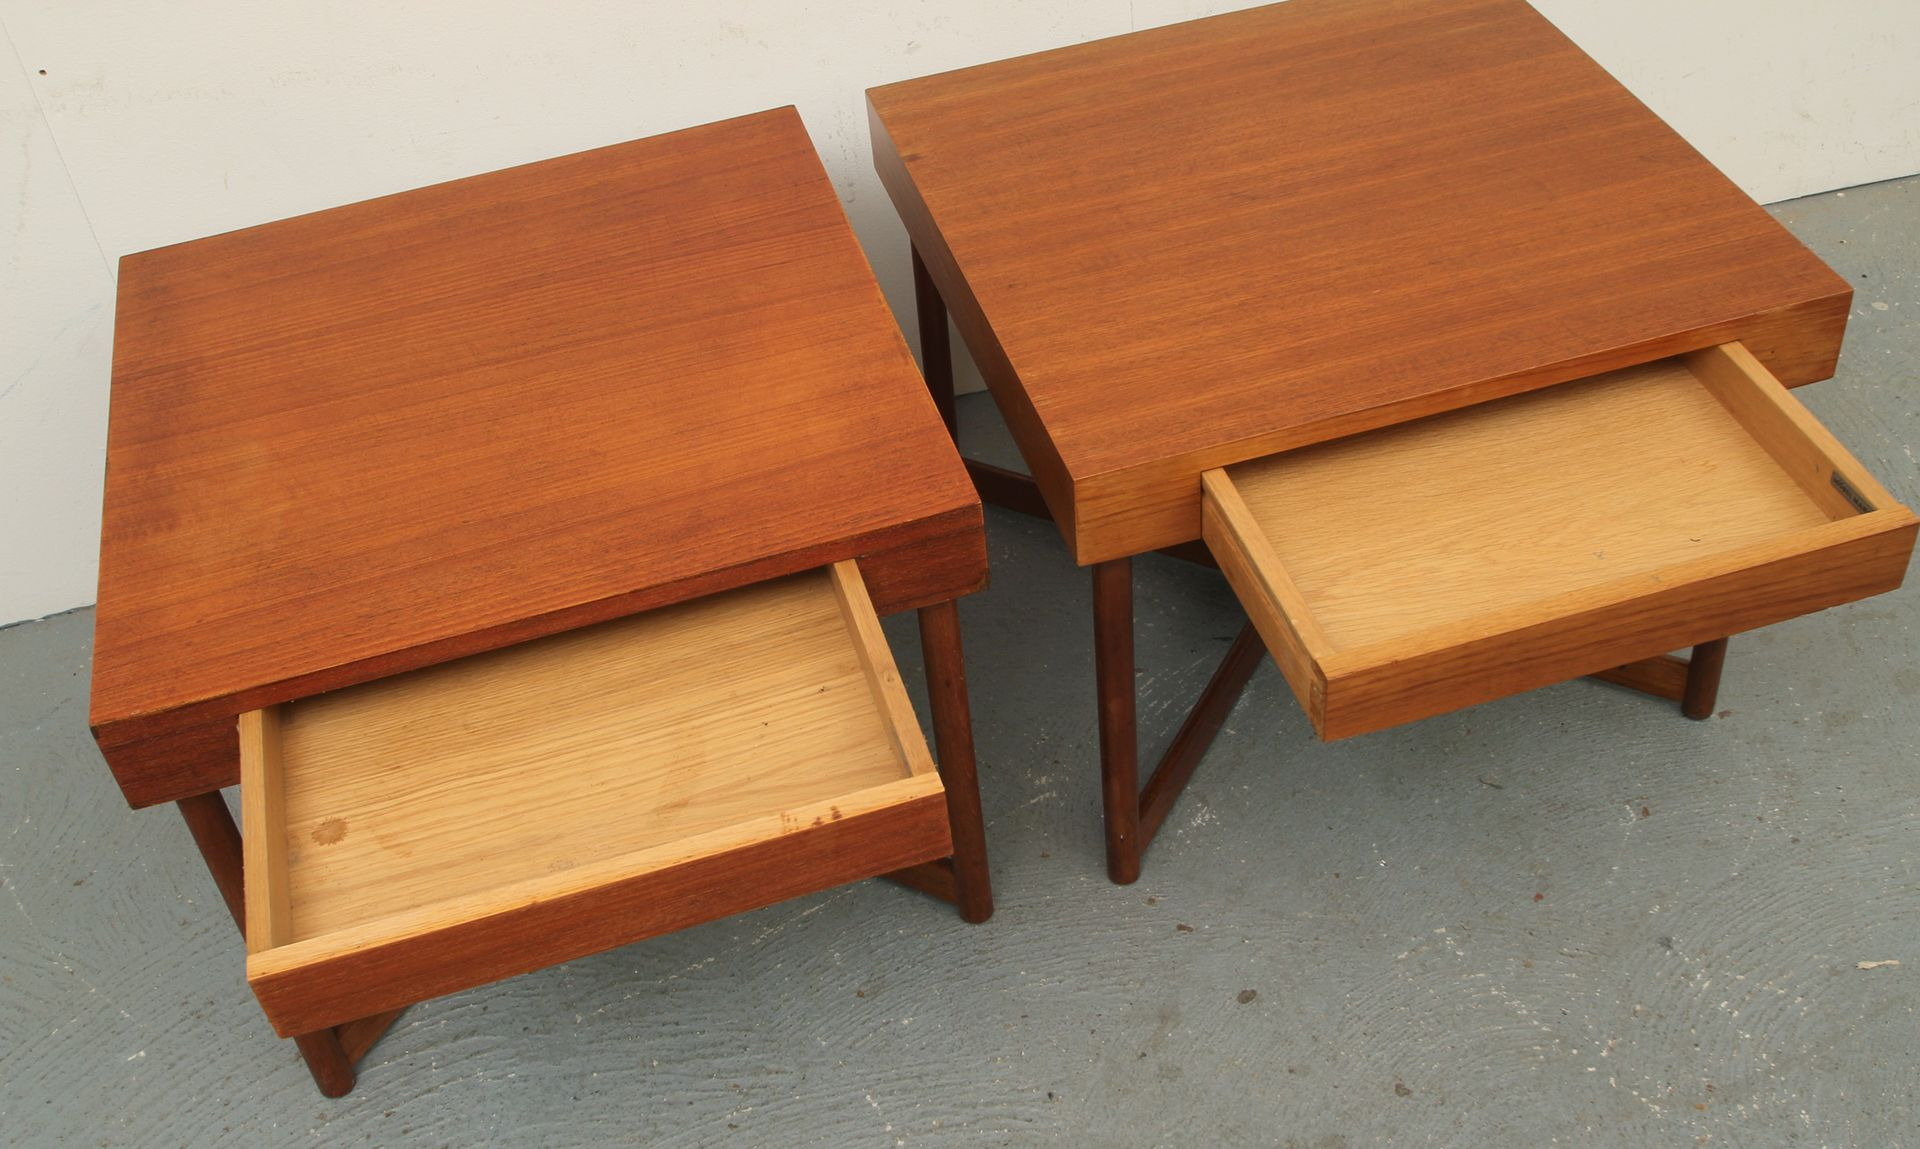 Danish Teak Square Coffee Tables 1960s Set Of 2 For Sale At Pamono